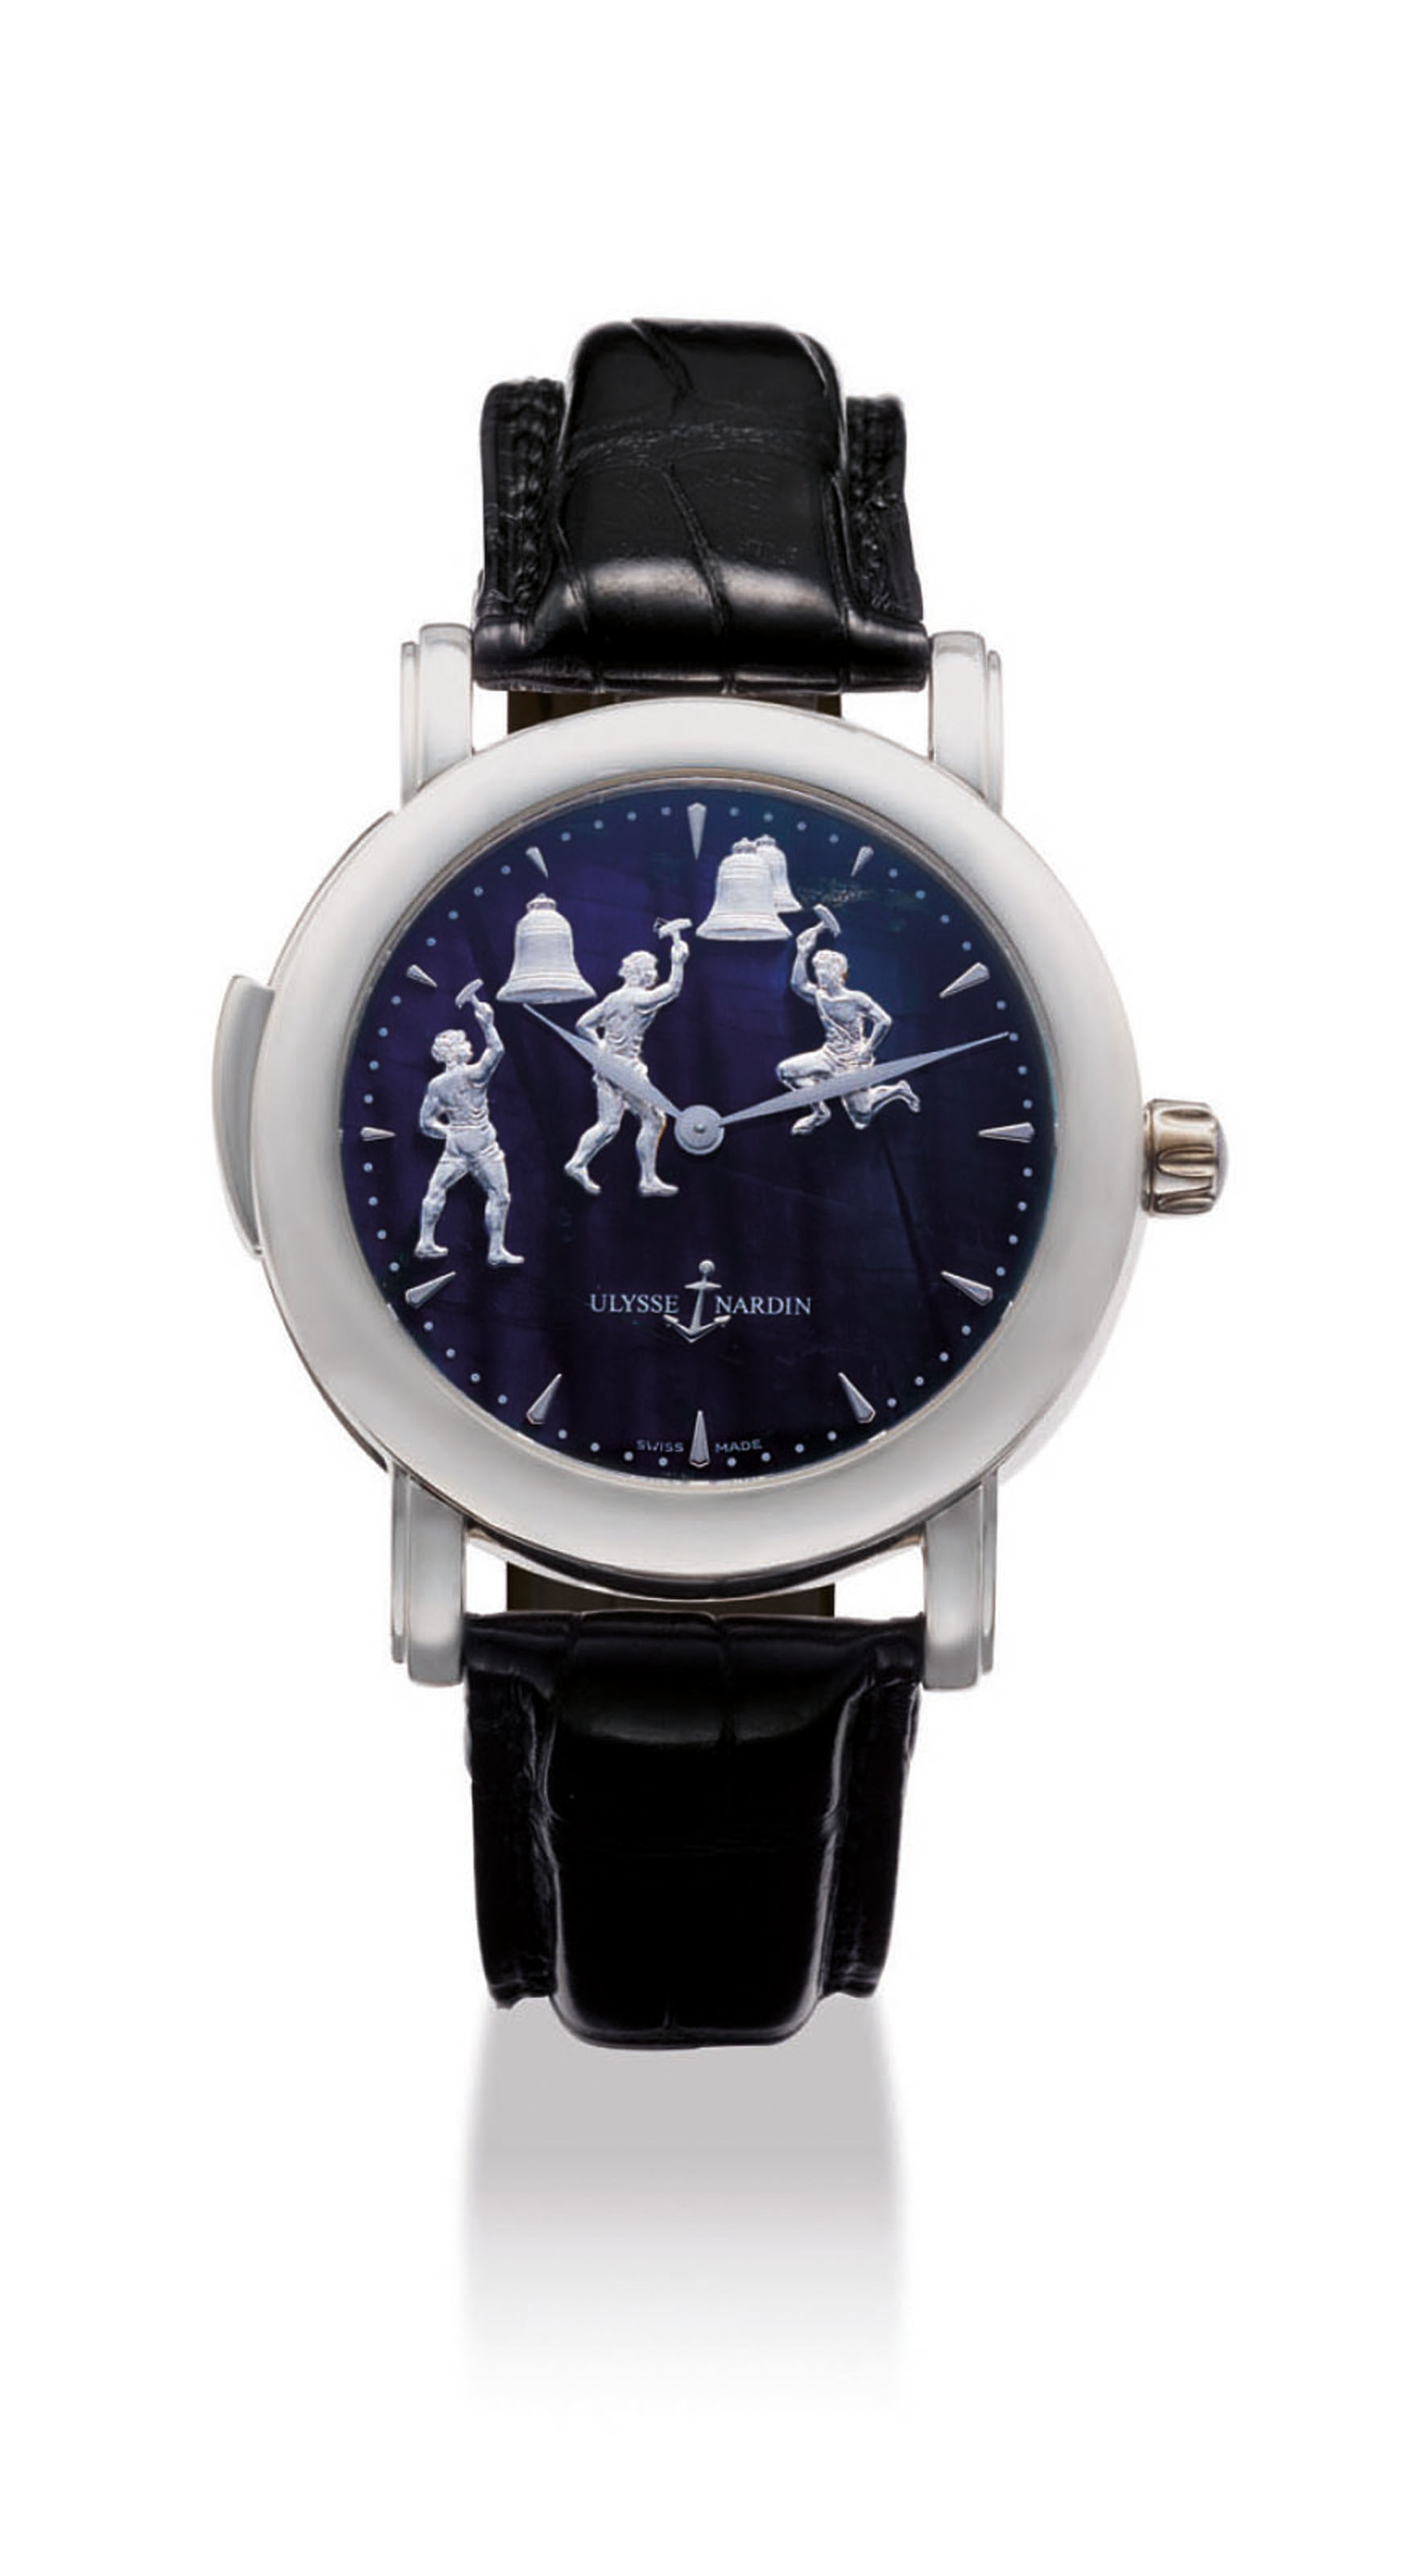 ULYSSE NARDIN. A VERY FINE AND RARE PLATINUM MINUTE REPEATING WRISTWATCH WITH THREE AUTOMATON JACQUEMARTS SCENE AND FELDSPAR DIAL